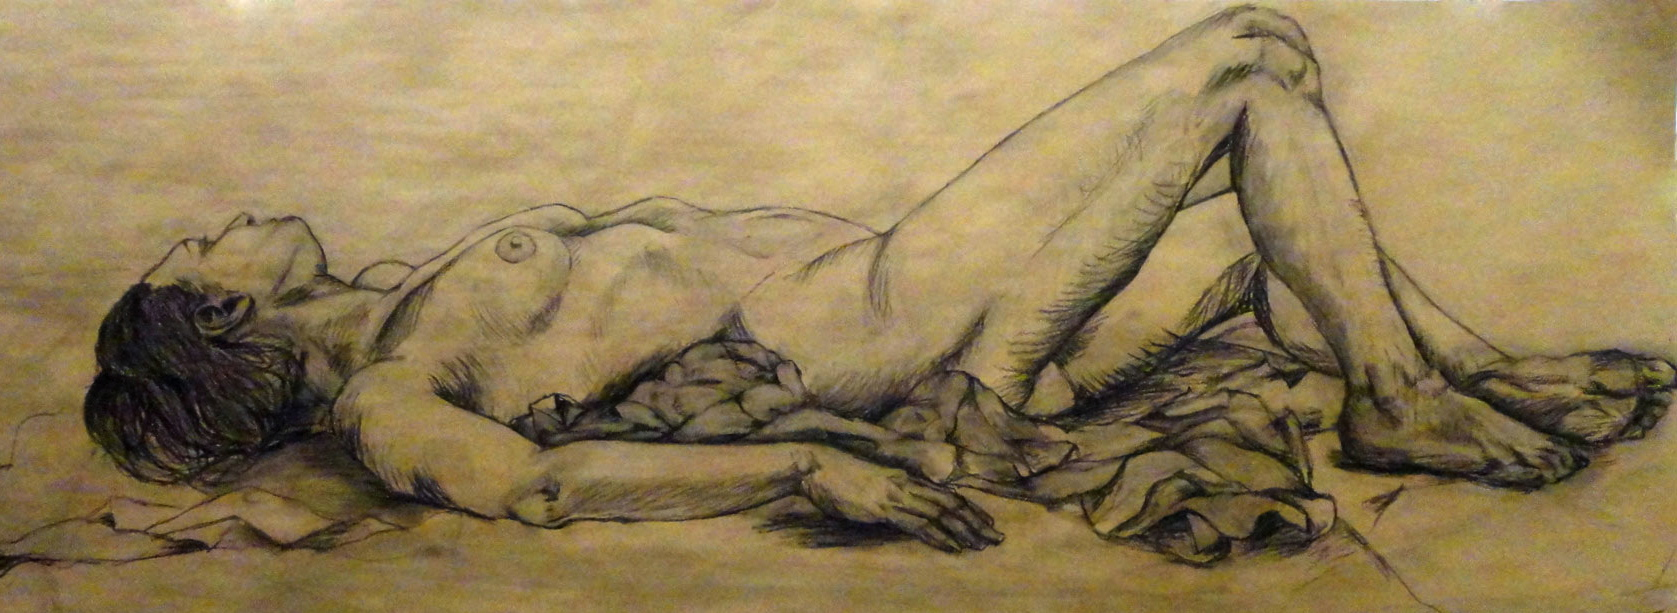 charcoal on brown paper